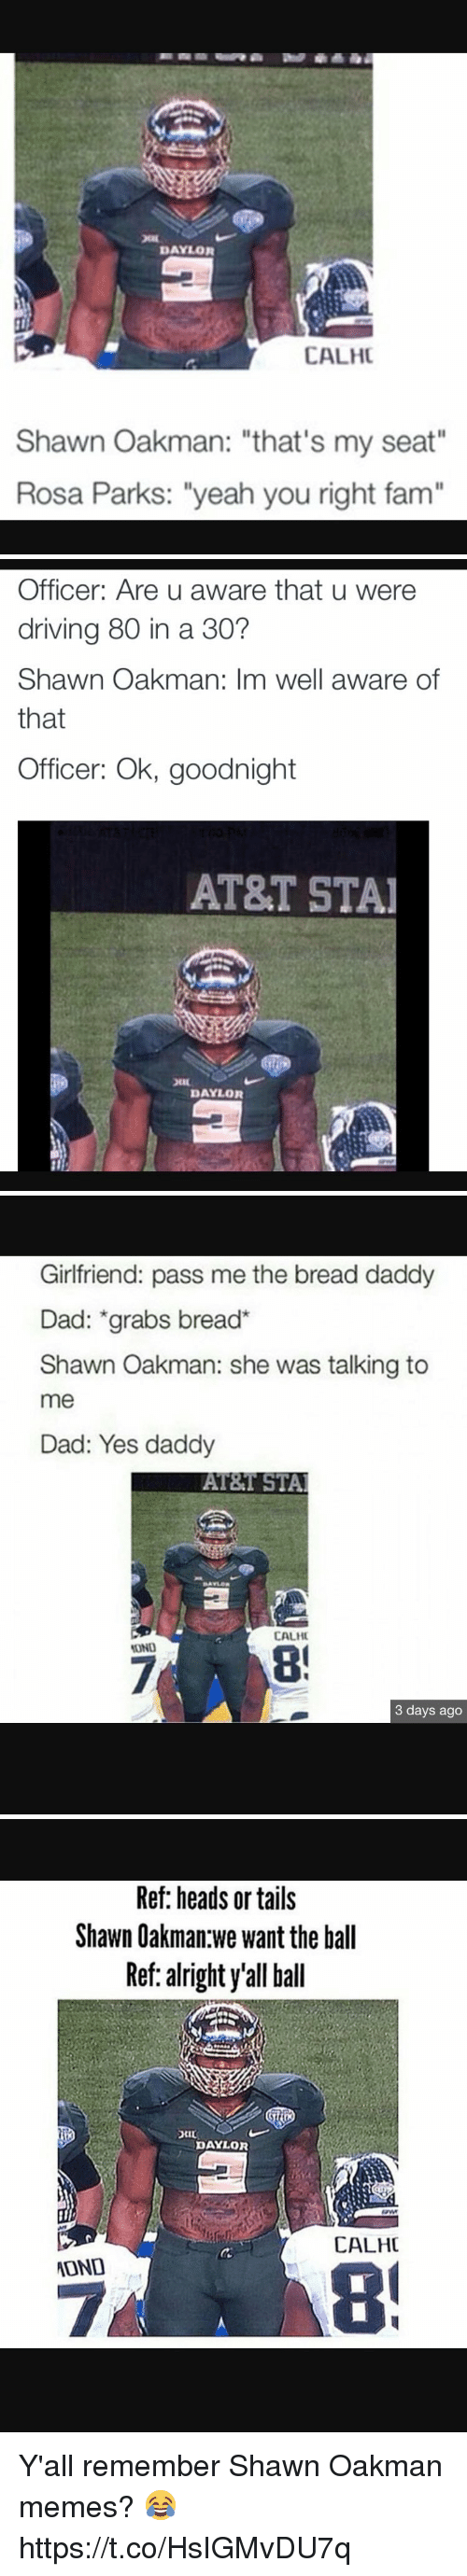 """Shawn Oakman: DAYLOR  CALHC  Shawn Oakman: """"that's my seat""""  Rosa Parks: """"yeah you right fam""""   Officer: Are u aware that u were  driving 80 in a 30?  Shawn Oakman: Im well aware of  that  Officer: Ok, goodnight  AT&T STAI  DAYLOR   Girlfriend: pass me the bread daddy  Dad: grabs bread  Shawn Oakman: she was talking to  me  Dad: Yes daddy  AT&T STAI  CALHU  OND  3 days ago   Ref: heads or tails  Shawn Oakman we want the ball  Ref: alright y'all ball  DAYLOR  CALHC  ATOND Y'all remember Shawn Oakman memes? 😂 https://t.co/HsIGMvDU7q"""